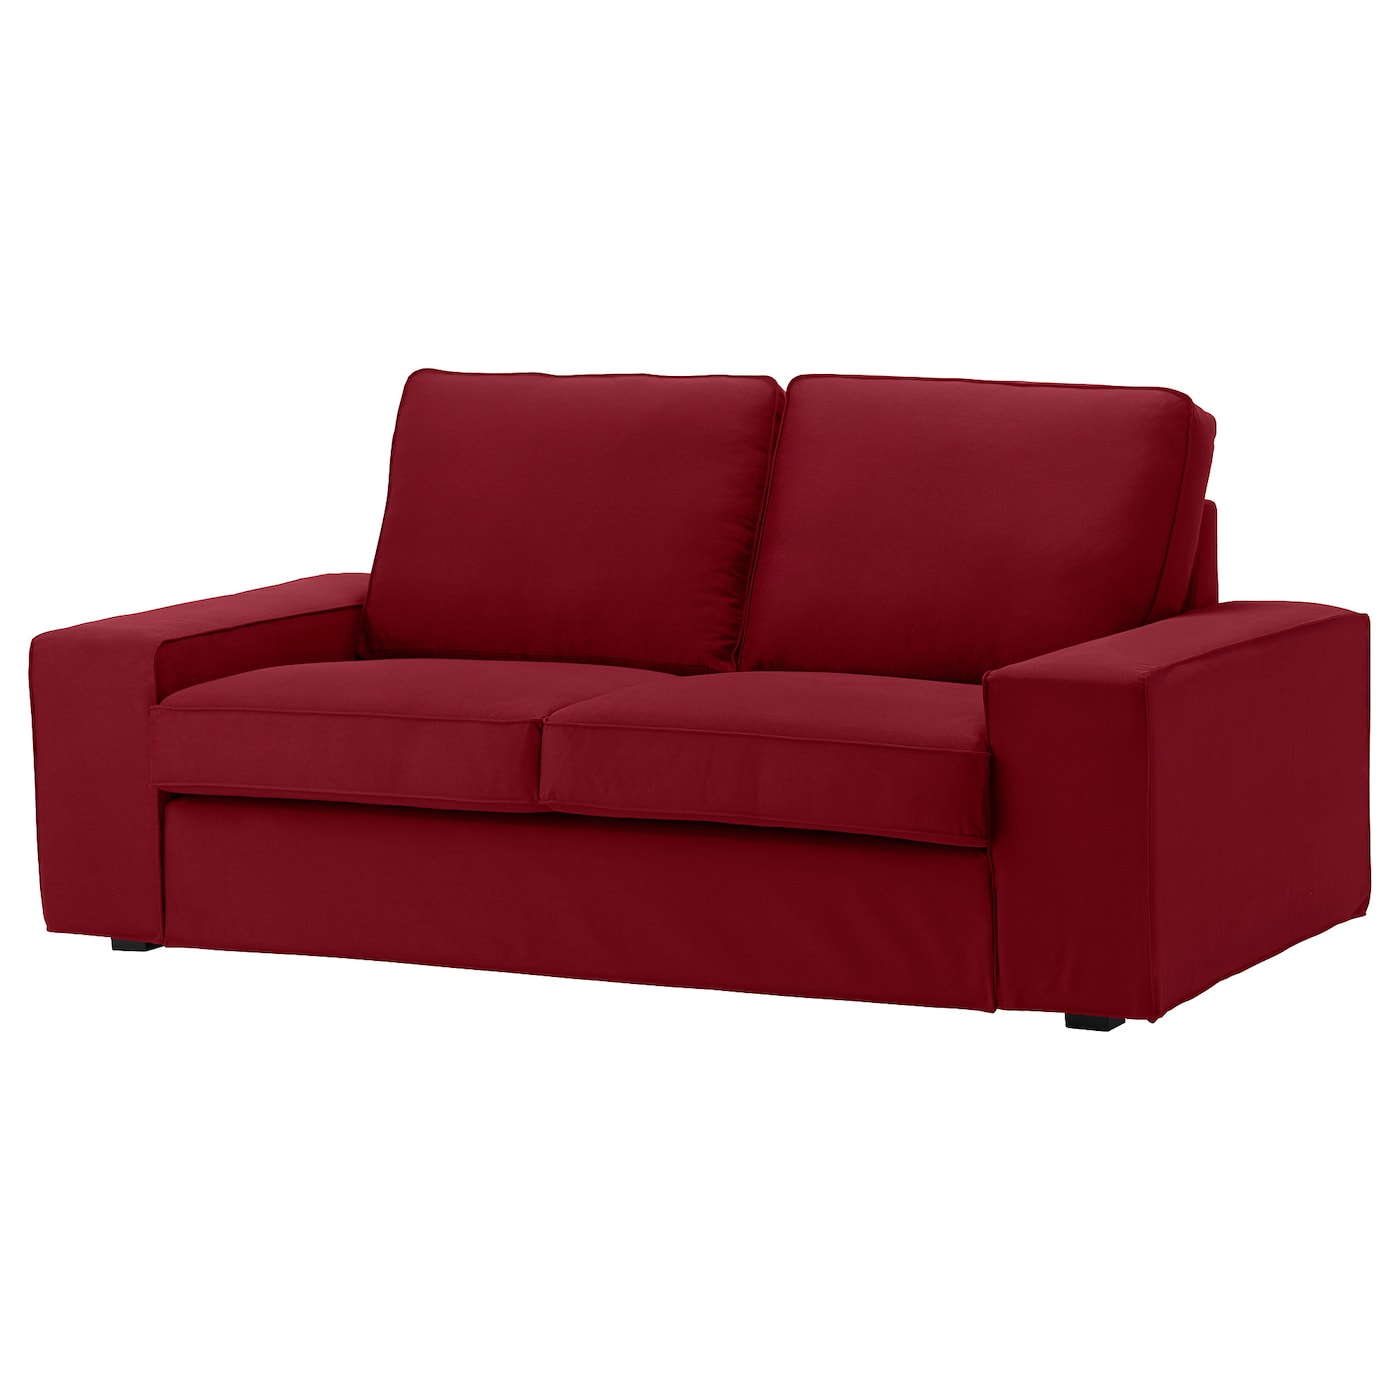 sofa bed uk under 100 bernhardt price list fabric sofas ikea kivik two seat 10 year guarantee read about the terms in